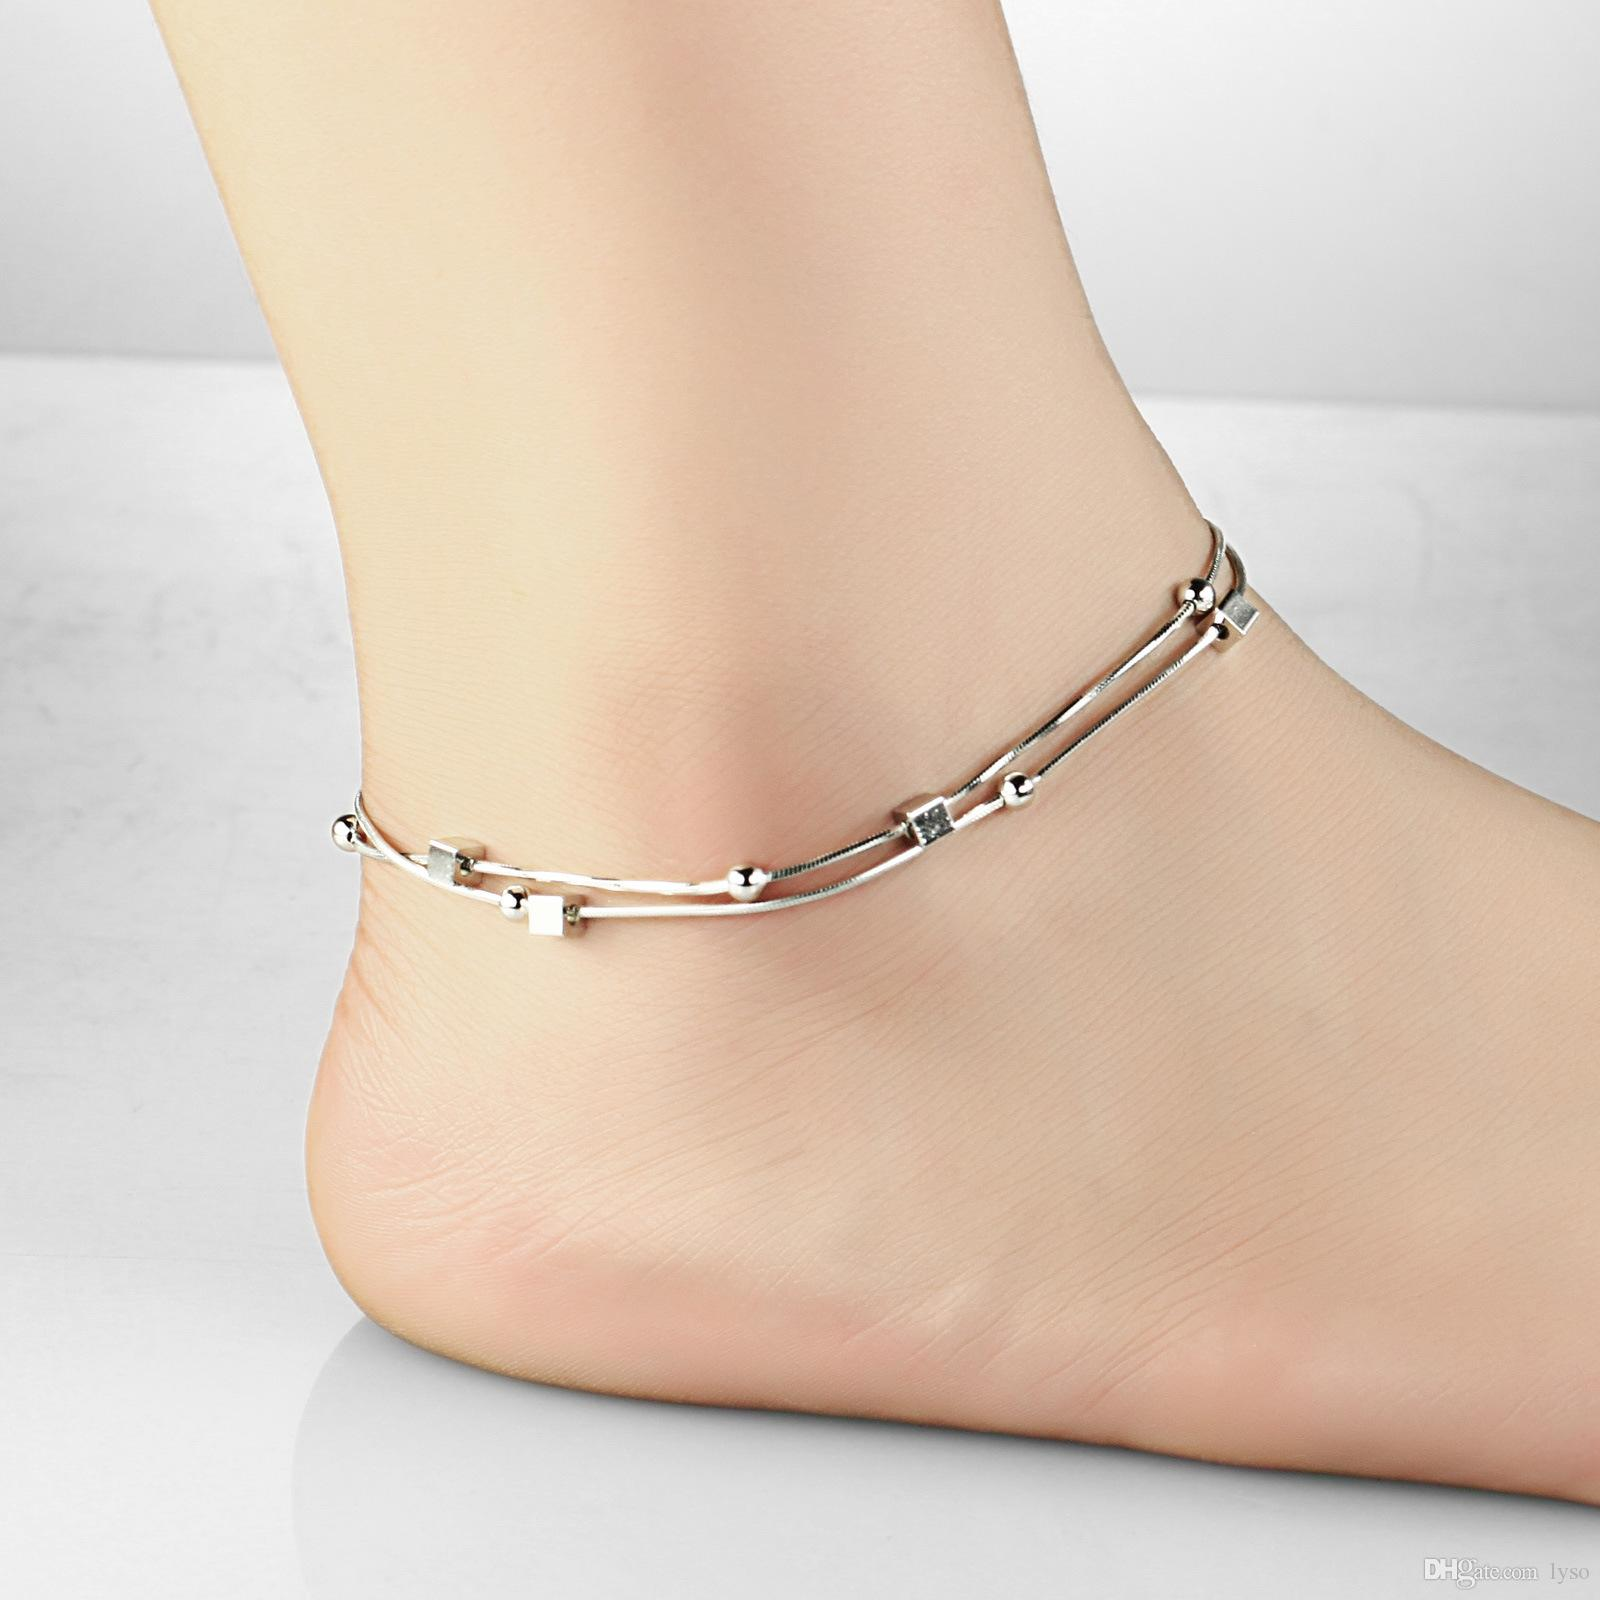 bracelets pearl imitation pin jewelry sandal foot beach by womens chain ankle barefoot gillberry anklet bracelet